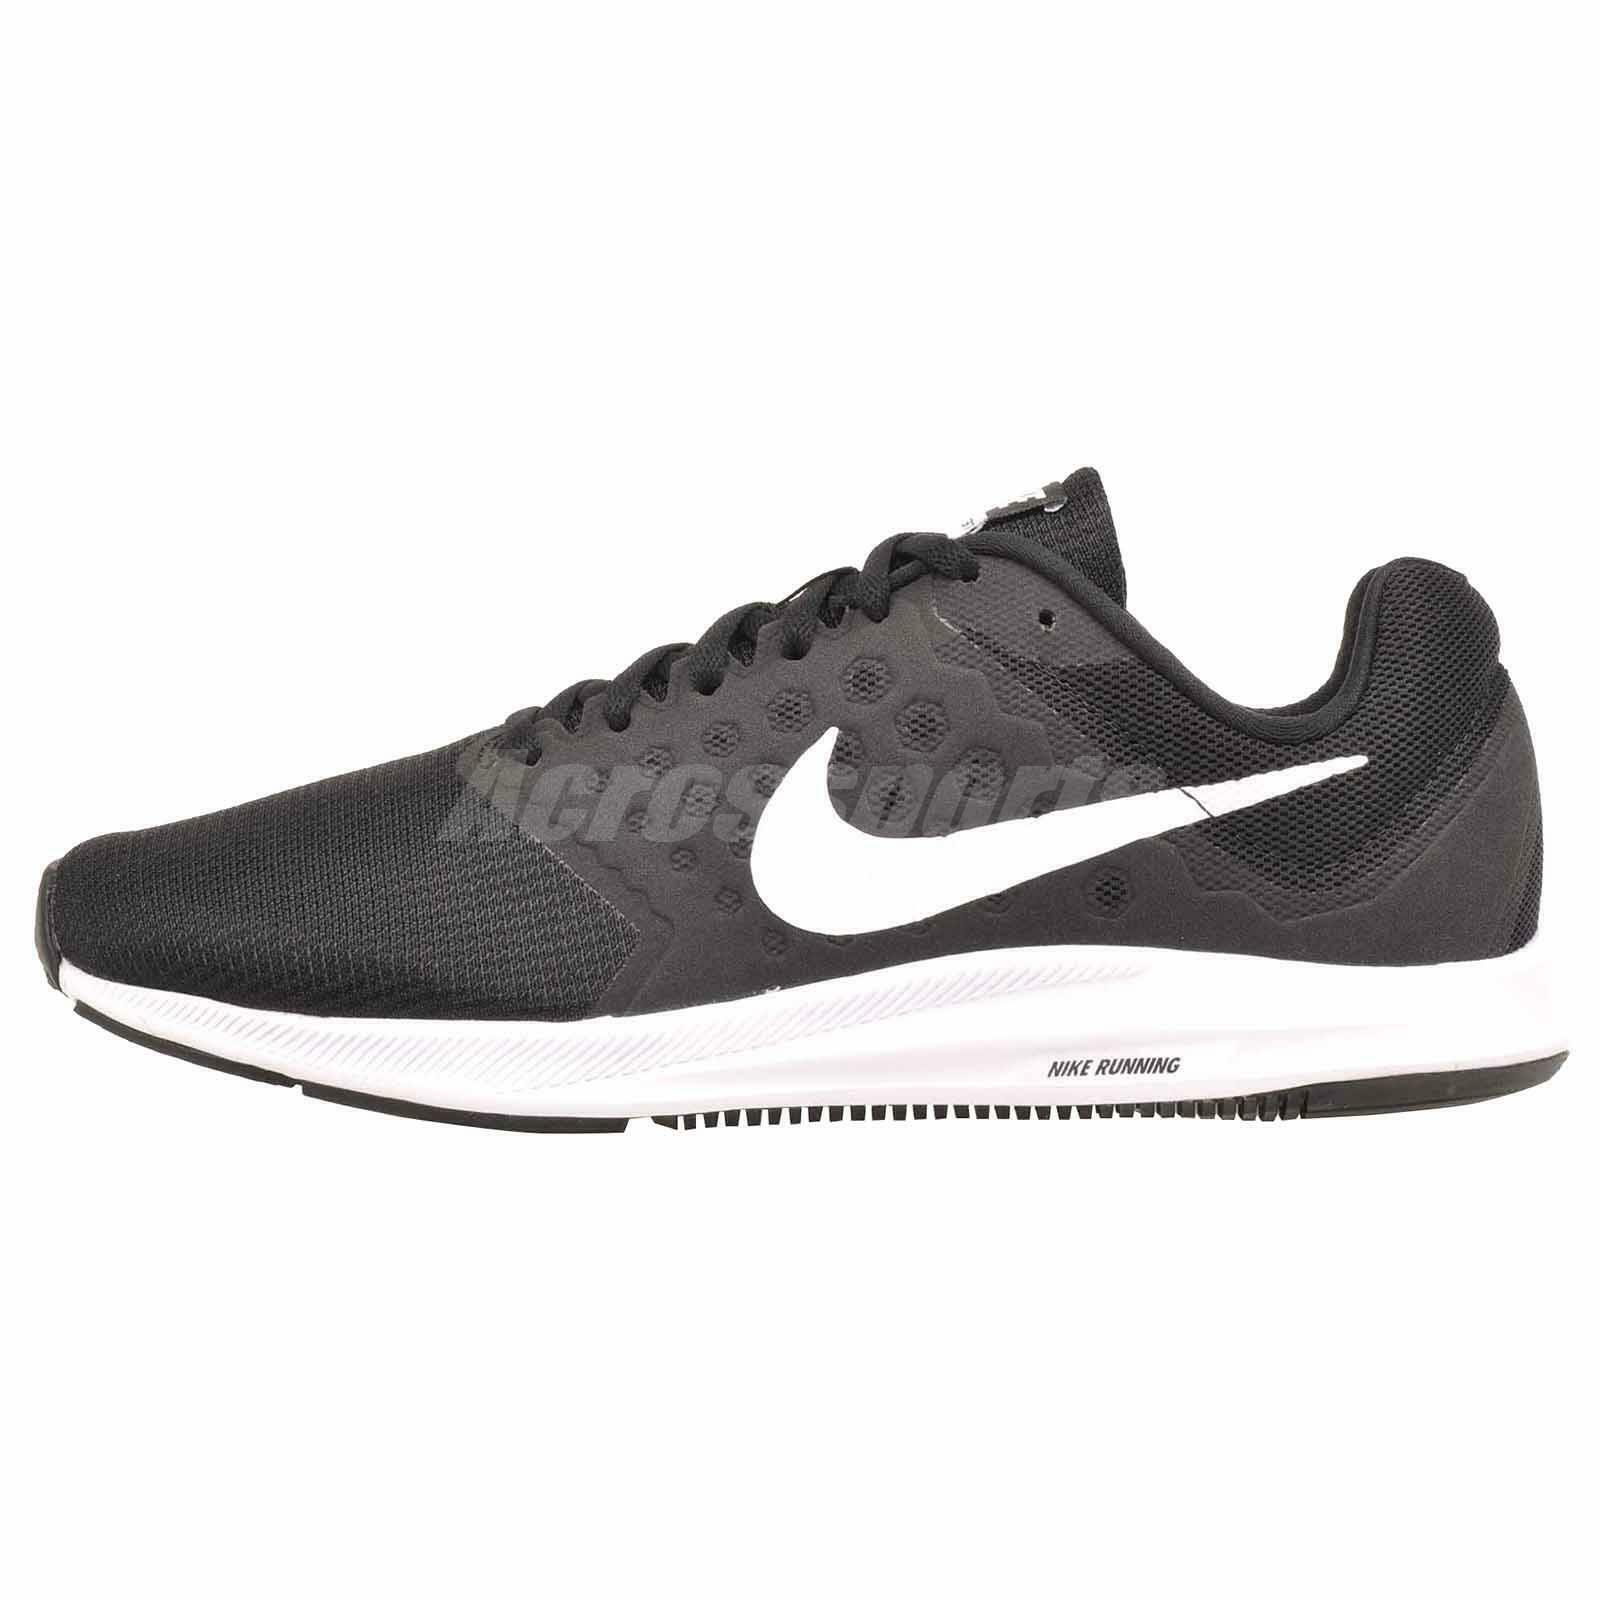 Nike WMNS Downshifter 7 852466-010